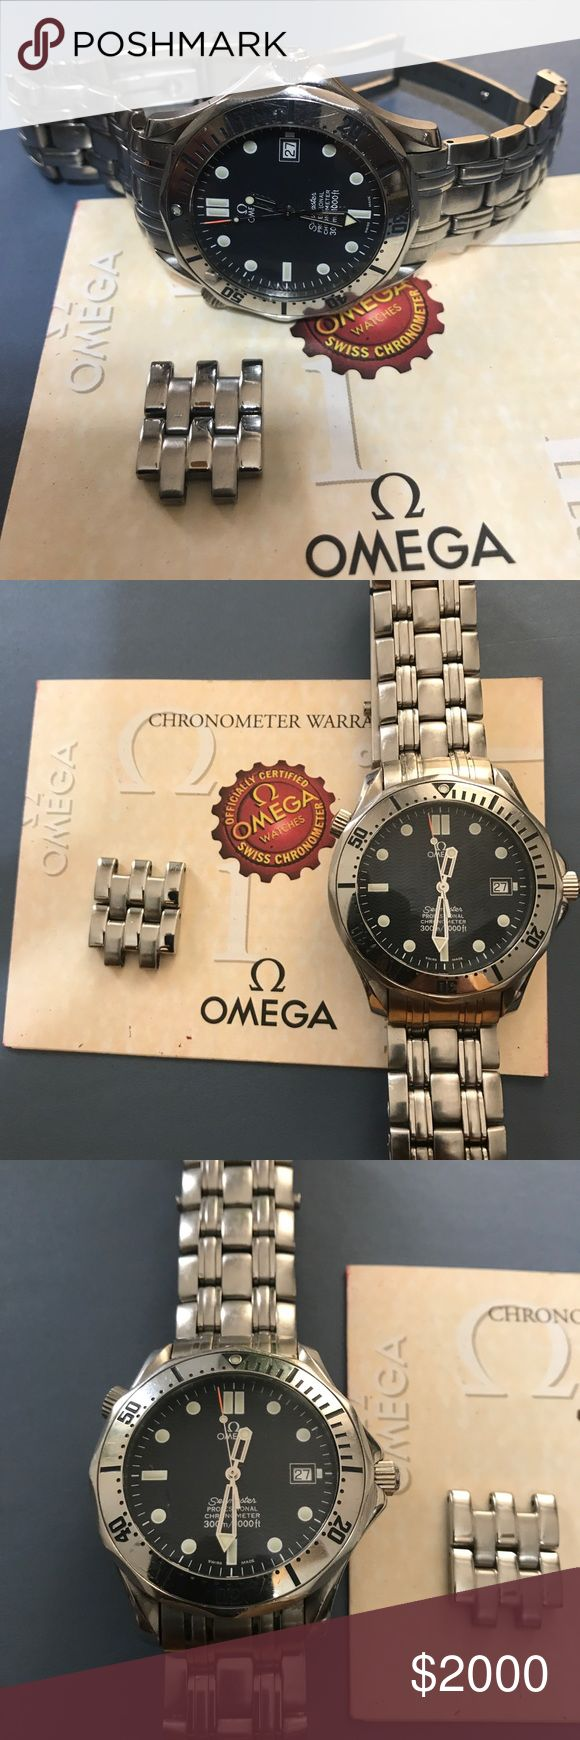 Omega watches Men's SeaMaster .(Swiss made) SeaMaster collection,41mm diameter ,stainless steel,crystal sapphire,water resistance 300 M /1000FT.                                 It is in really good condition.                                                           60229878.                                                                               Price is Firm .                                                                                  No lowballs Please . Omega Accessories…